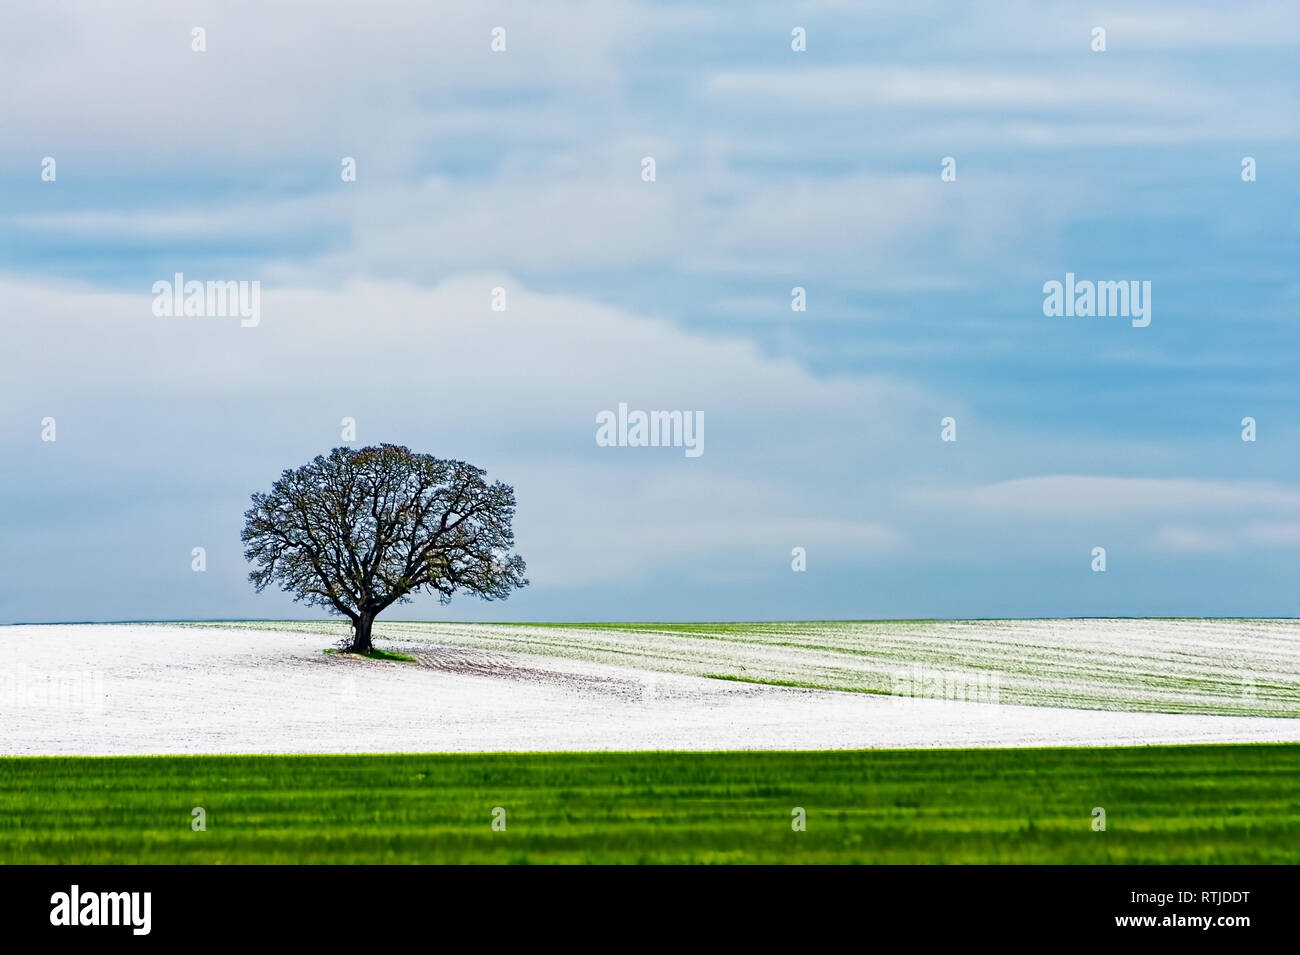 Copyspace available in the minimalist landscape of a agricultural hillside under cloudy winter skies and had laid a dusting of snow on field and a lon - Stock Image